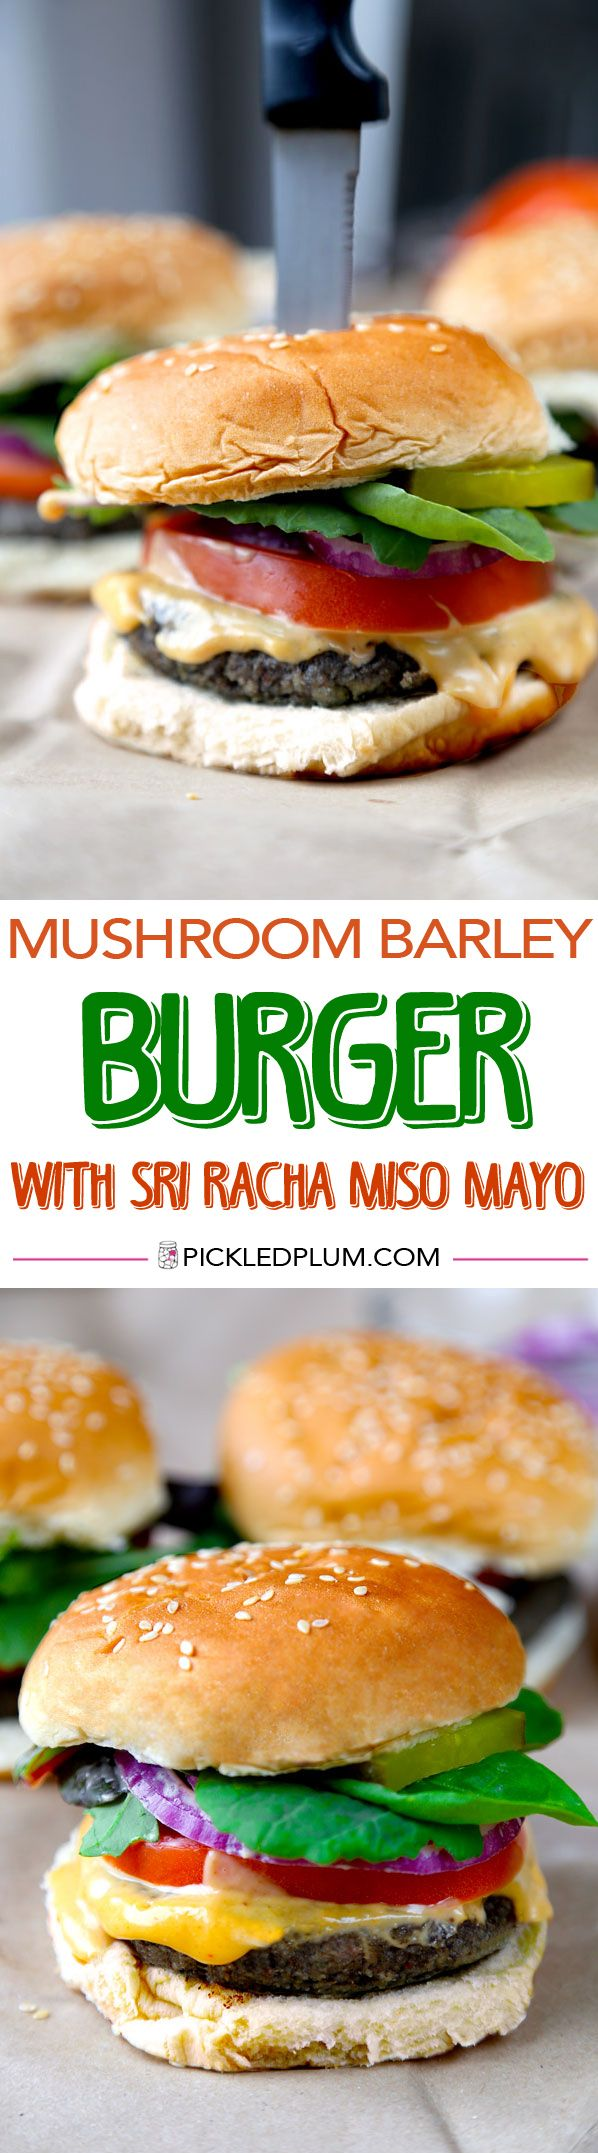 Mushroom Barley Burger with Sri Racha Miso Mayo - Vegan and Gluten Free and truly delicious! Less than 30 minutes meal. http://www.pickledplum.com/mushroom-barley-burger-with-sri-racha-miso-mayo/